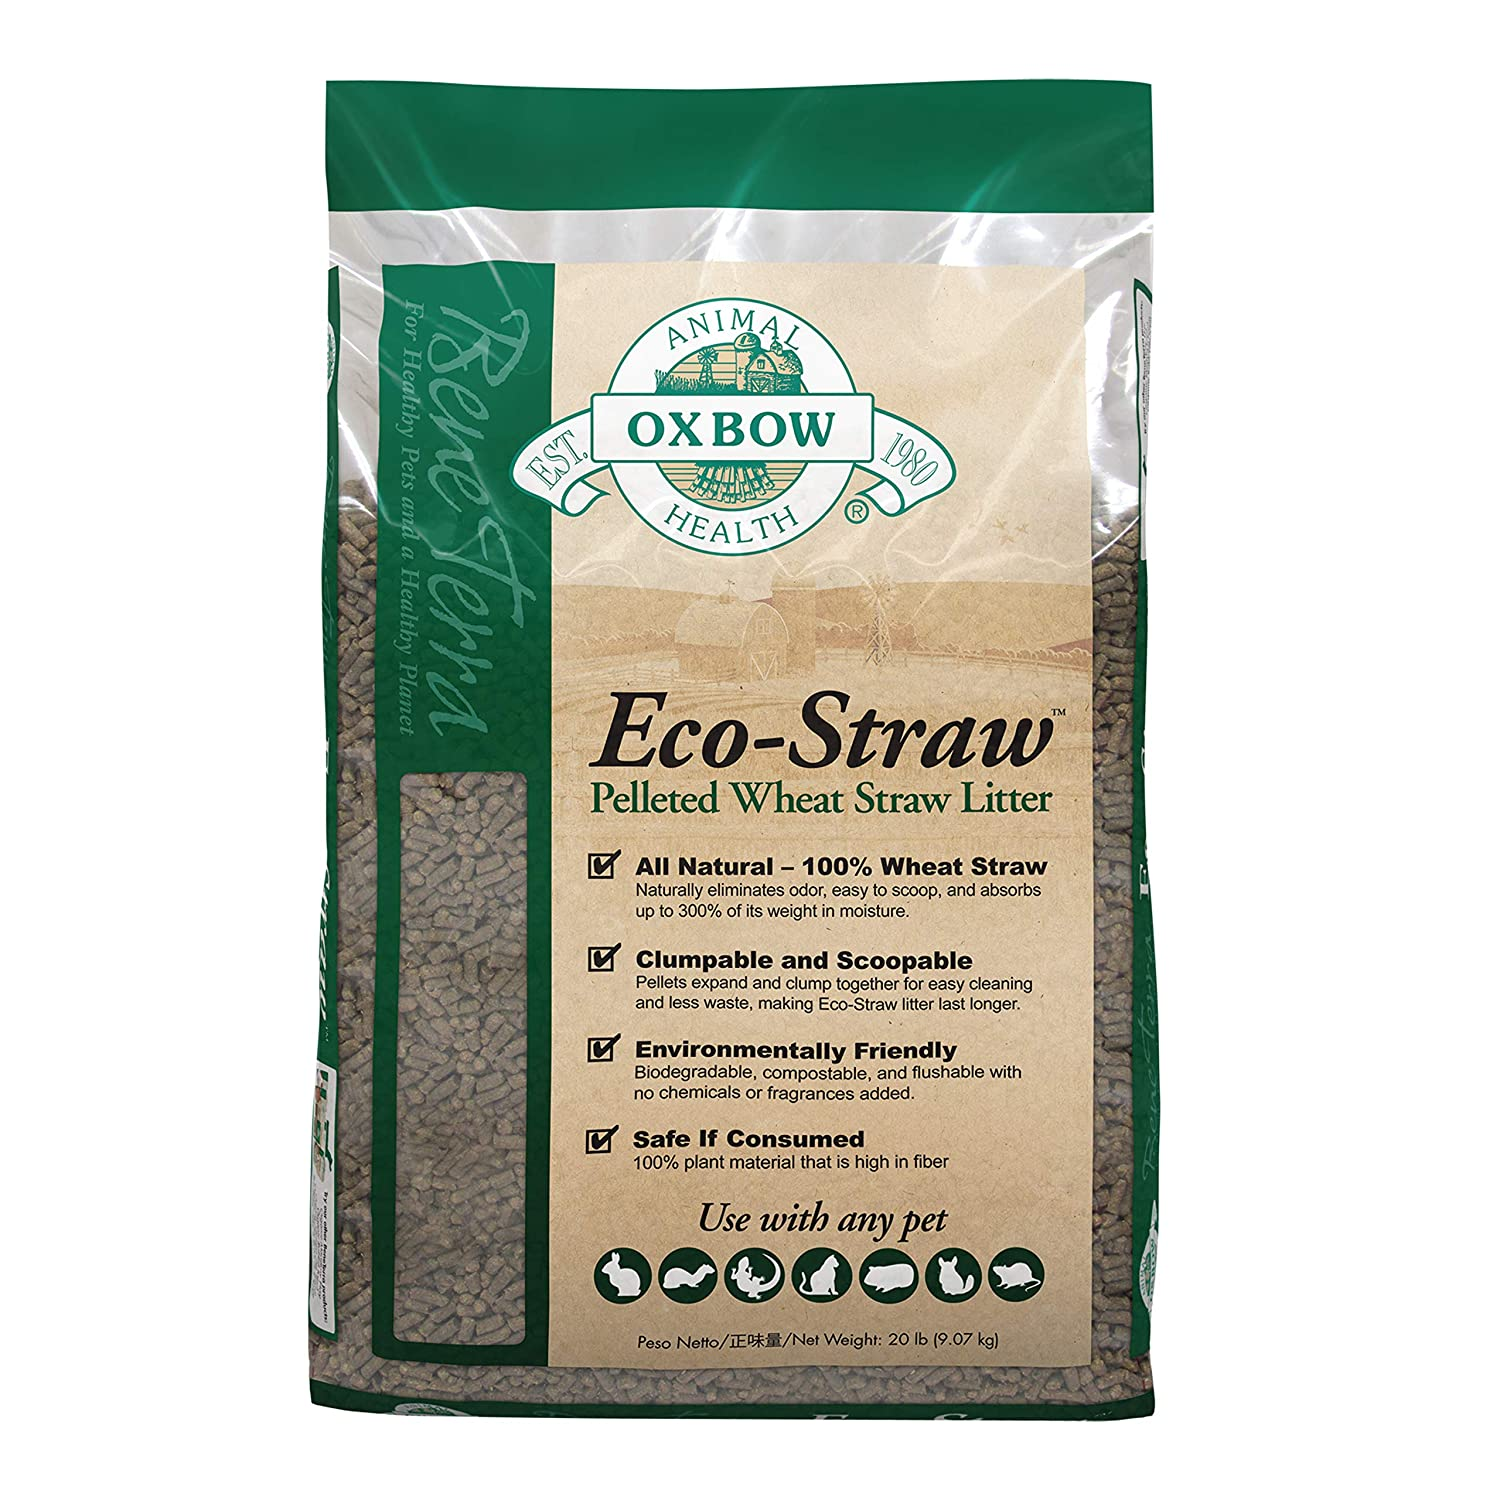 OXBOW PET PRODUCTS 448061 Eco-straw Small Animal Bedding for Pets, 20-Pound